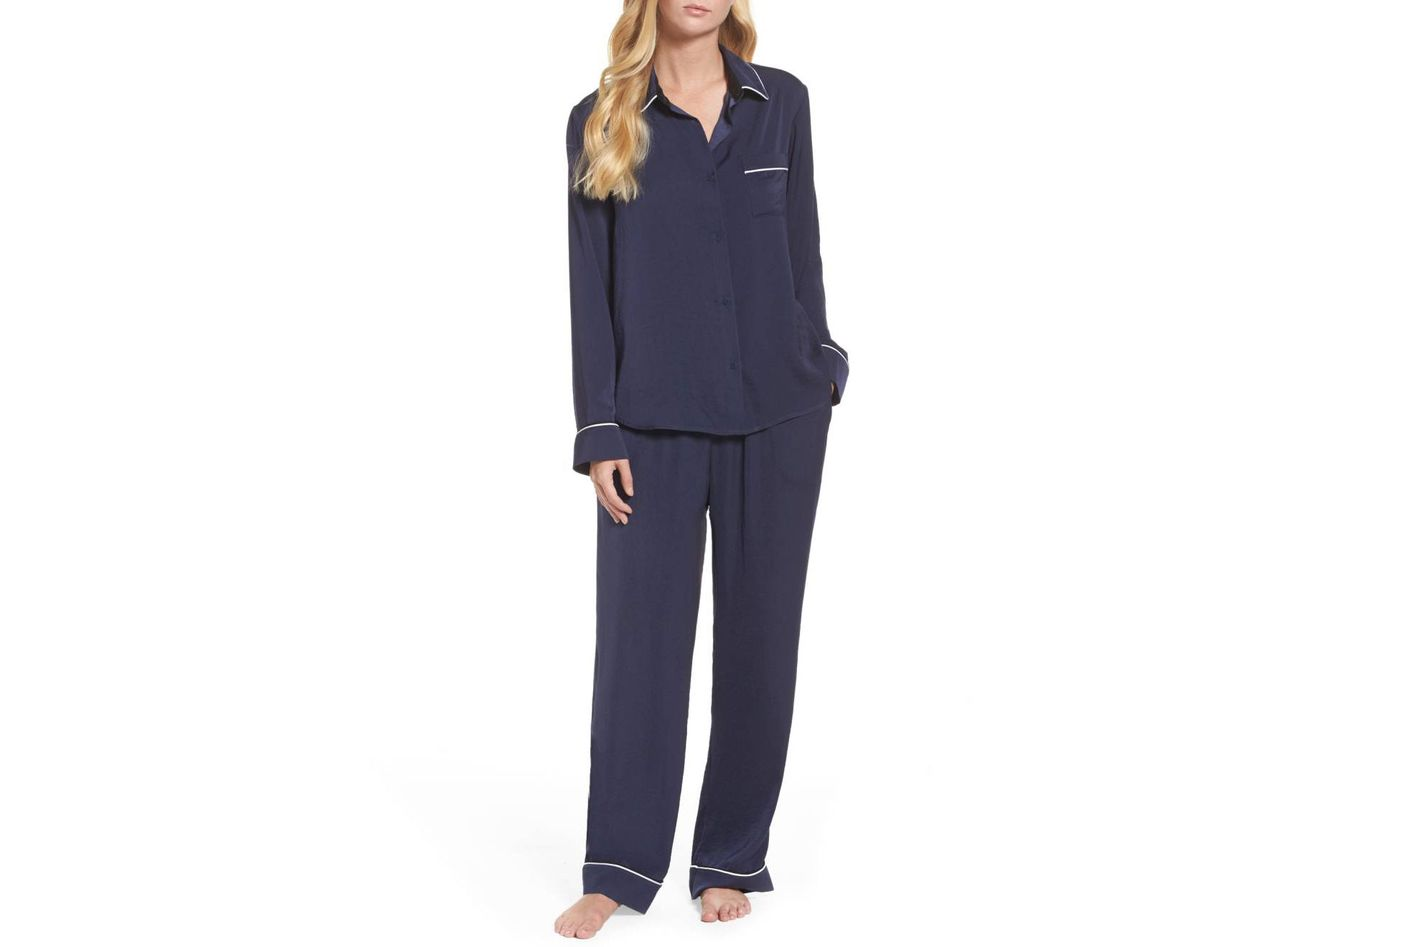 DKNY Long Pajamas